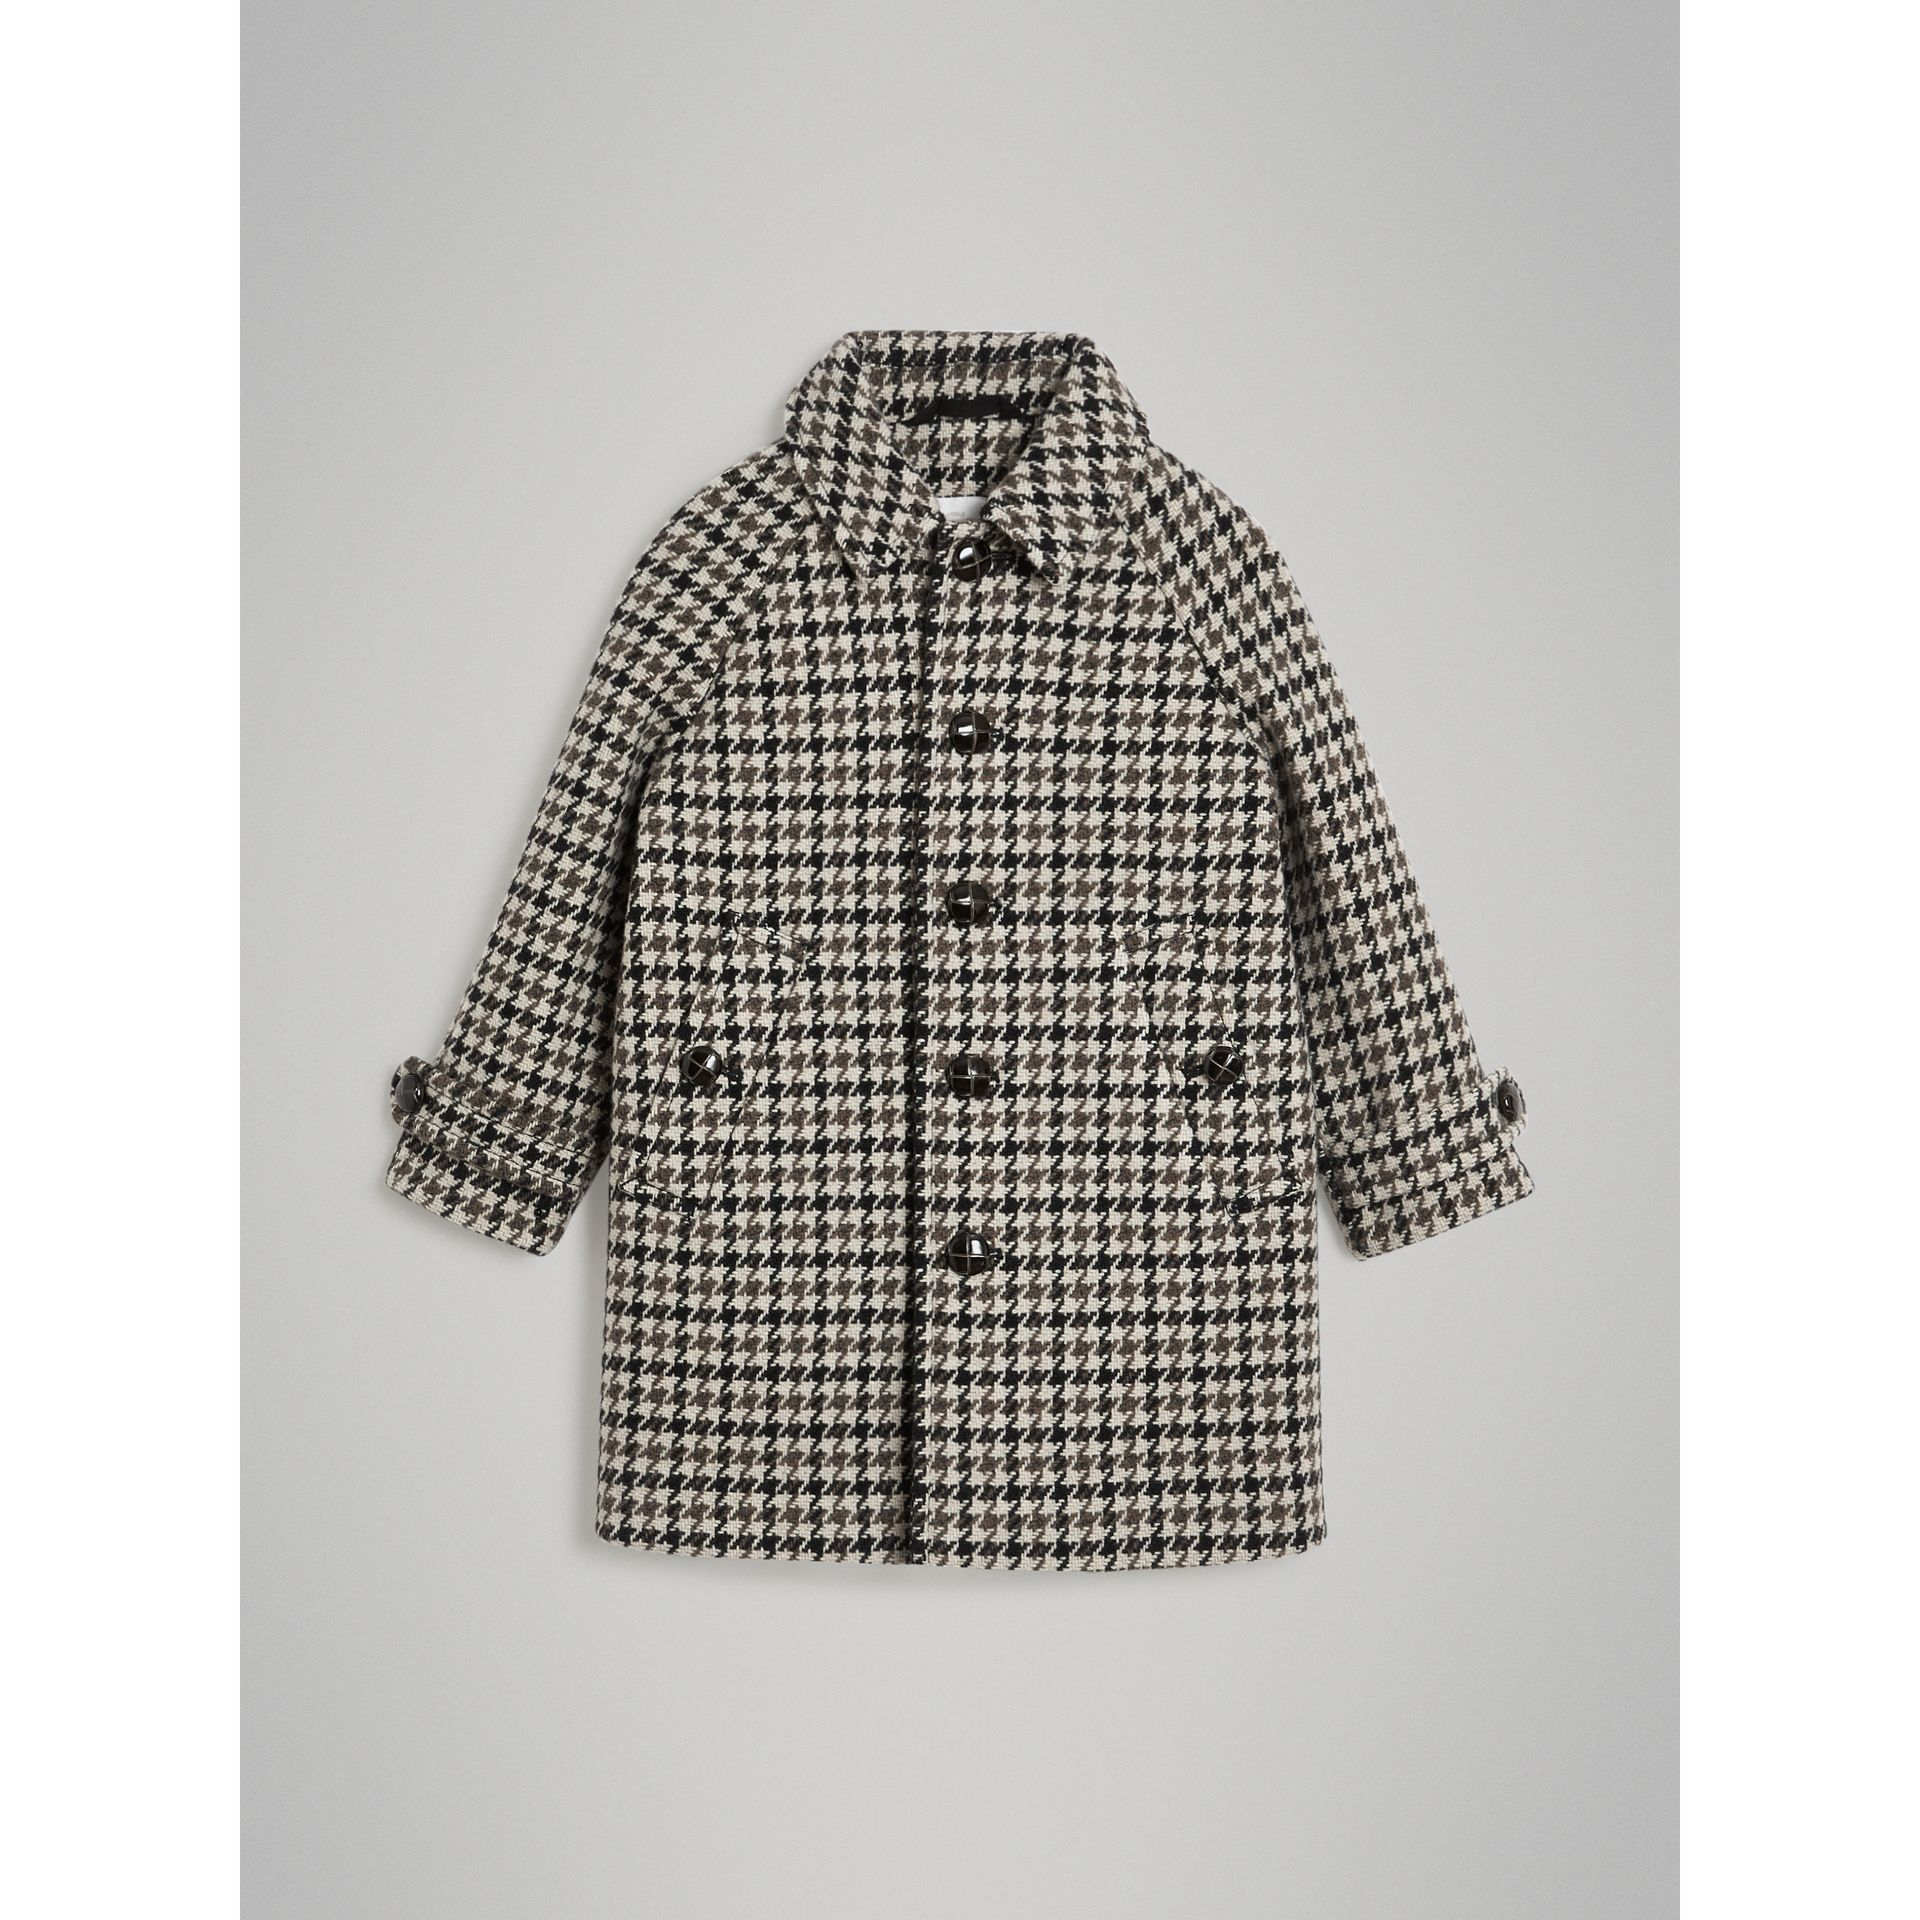 Houndstooth Check Wool Cashmere Blend Coat in Mid Grey | Burberry United Kingdom - gallery image 0